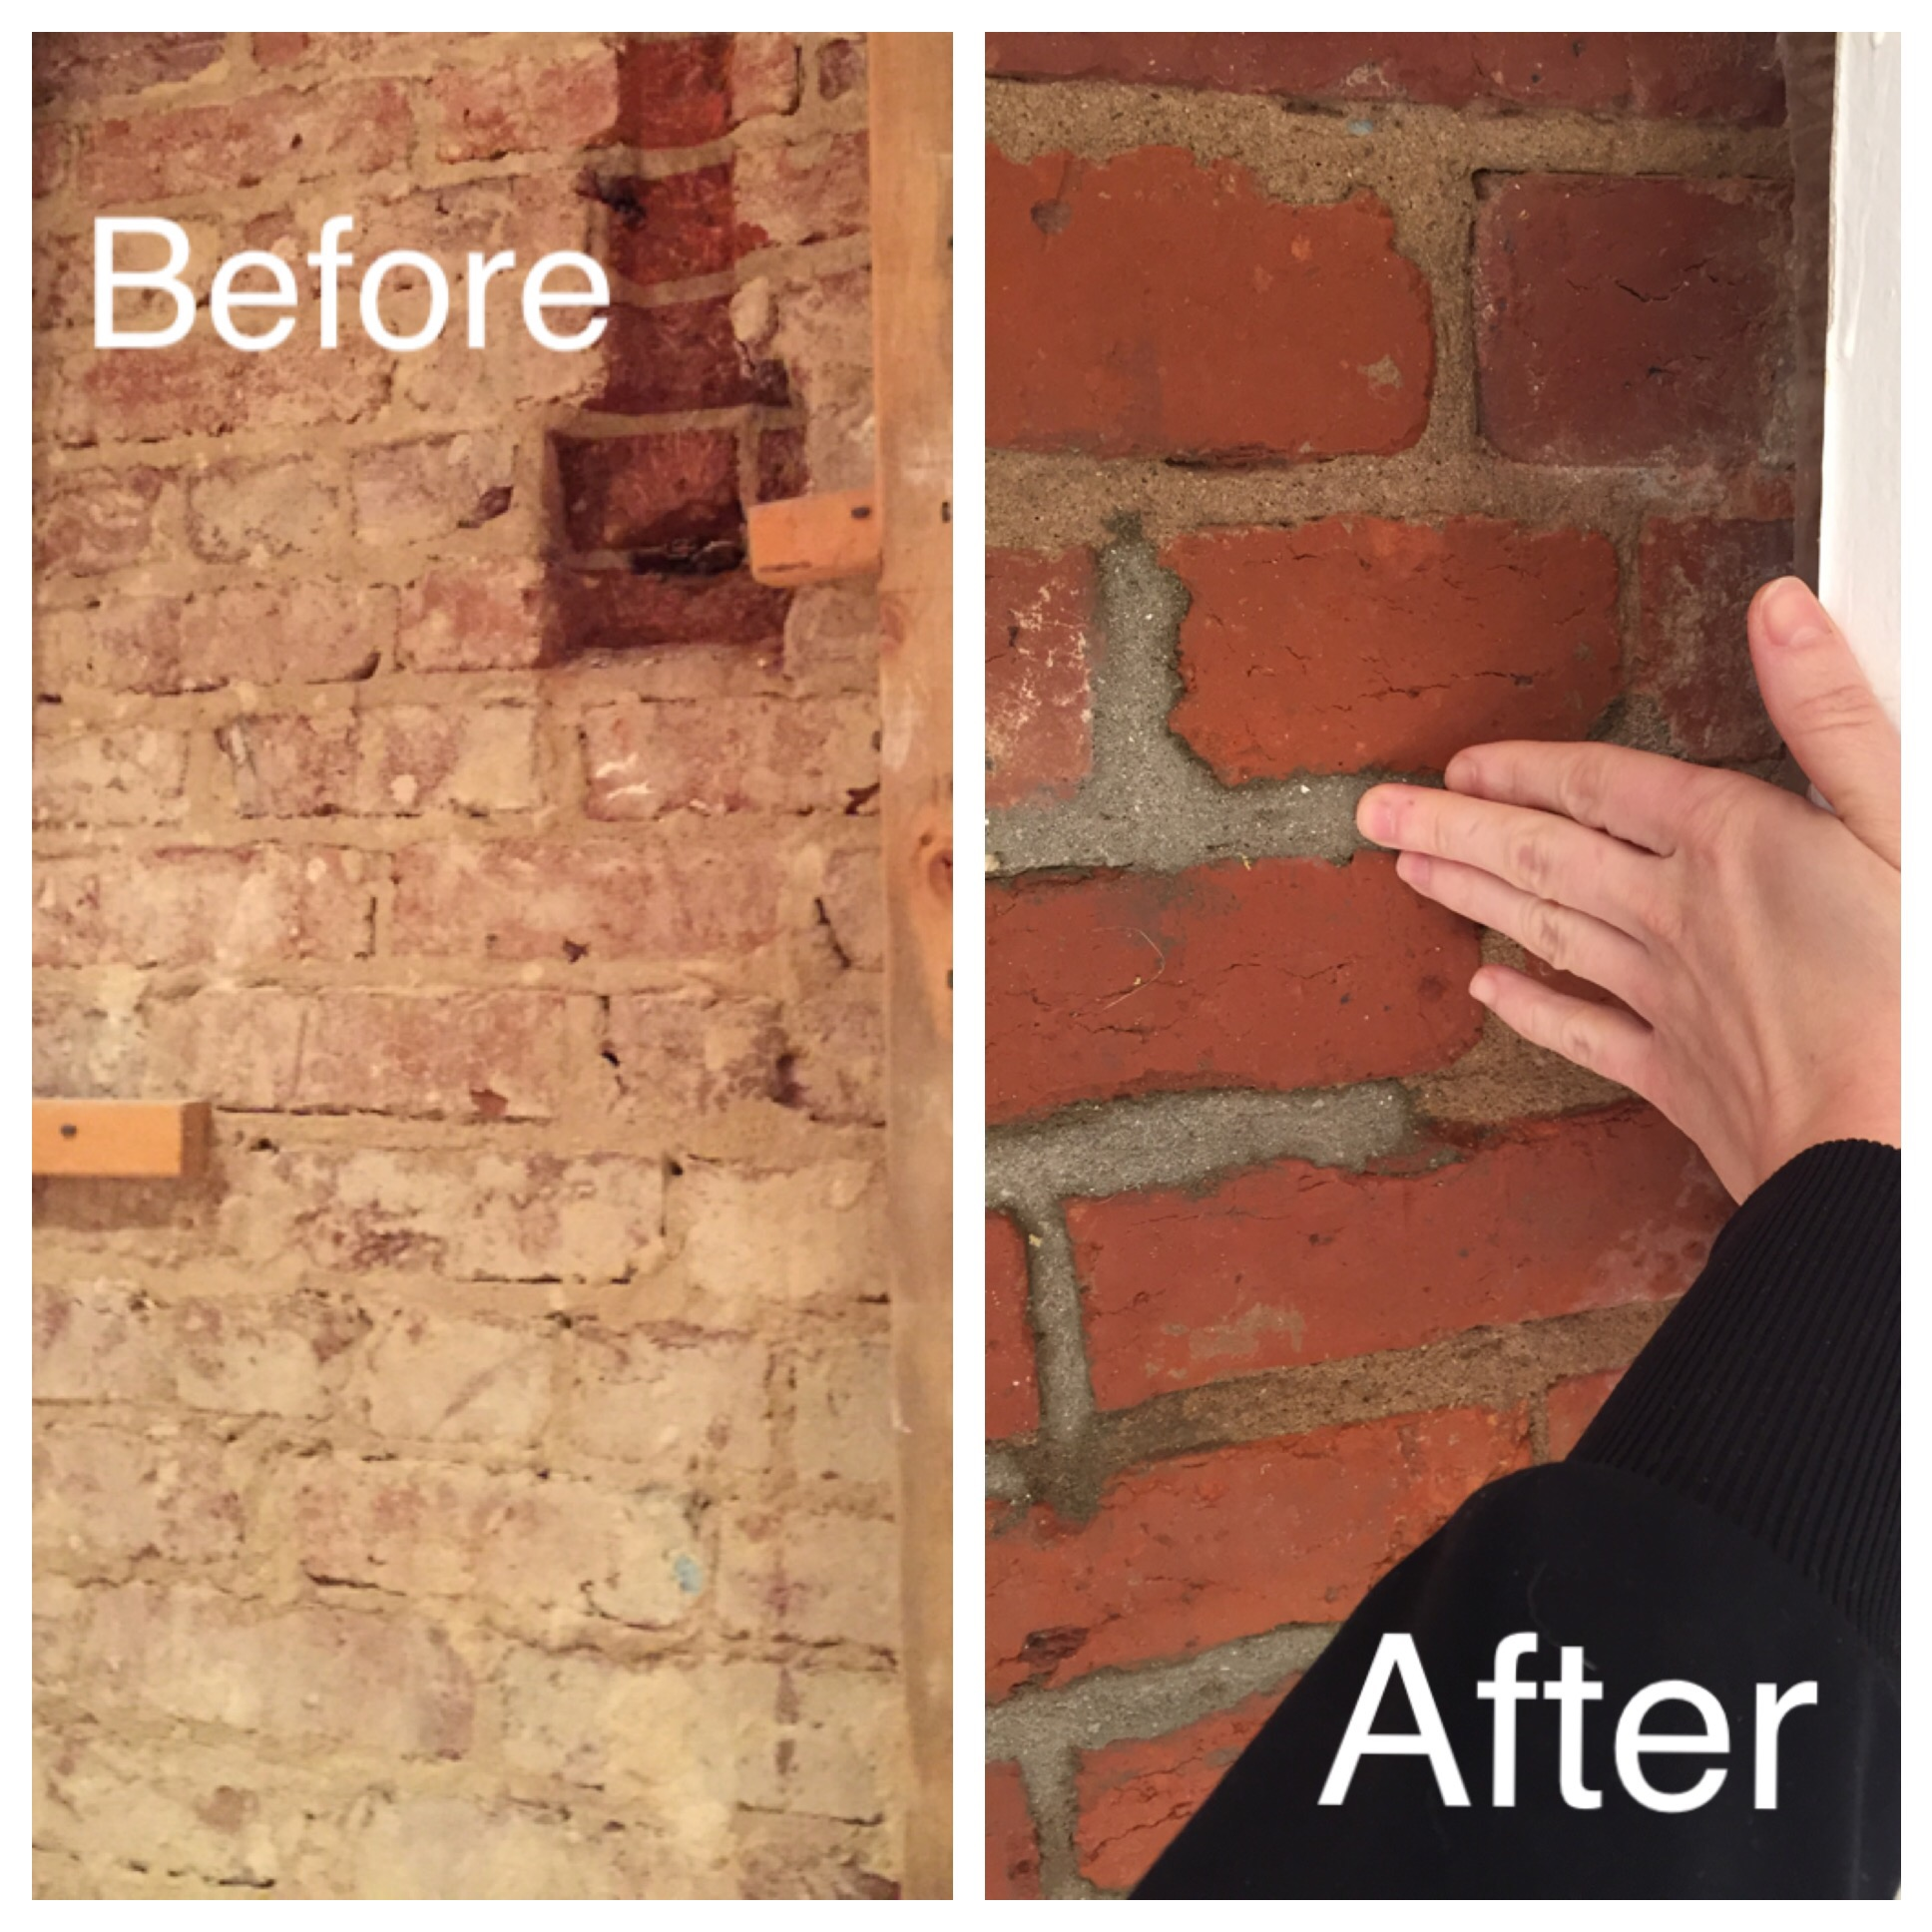 Noble Decor How To Clean Brick Stairs How To Clean Brick Inside Fireplace How To Clean Brick District houzz 01 How To Clean Brick